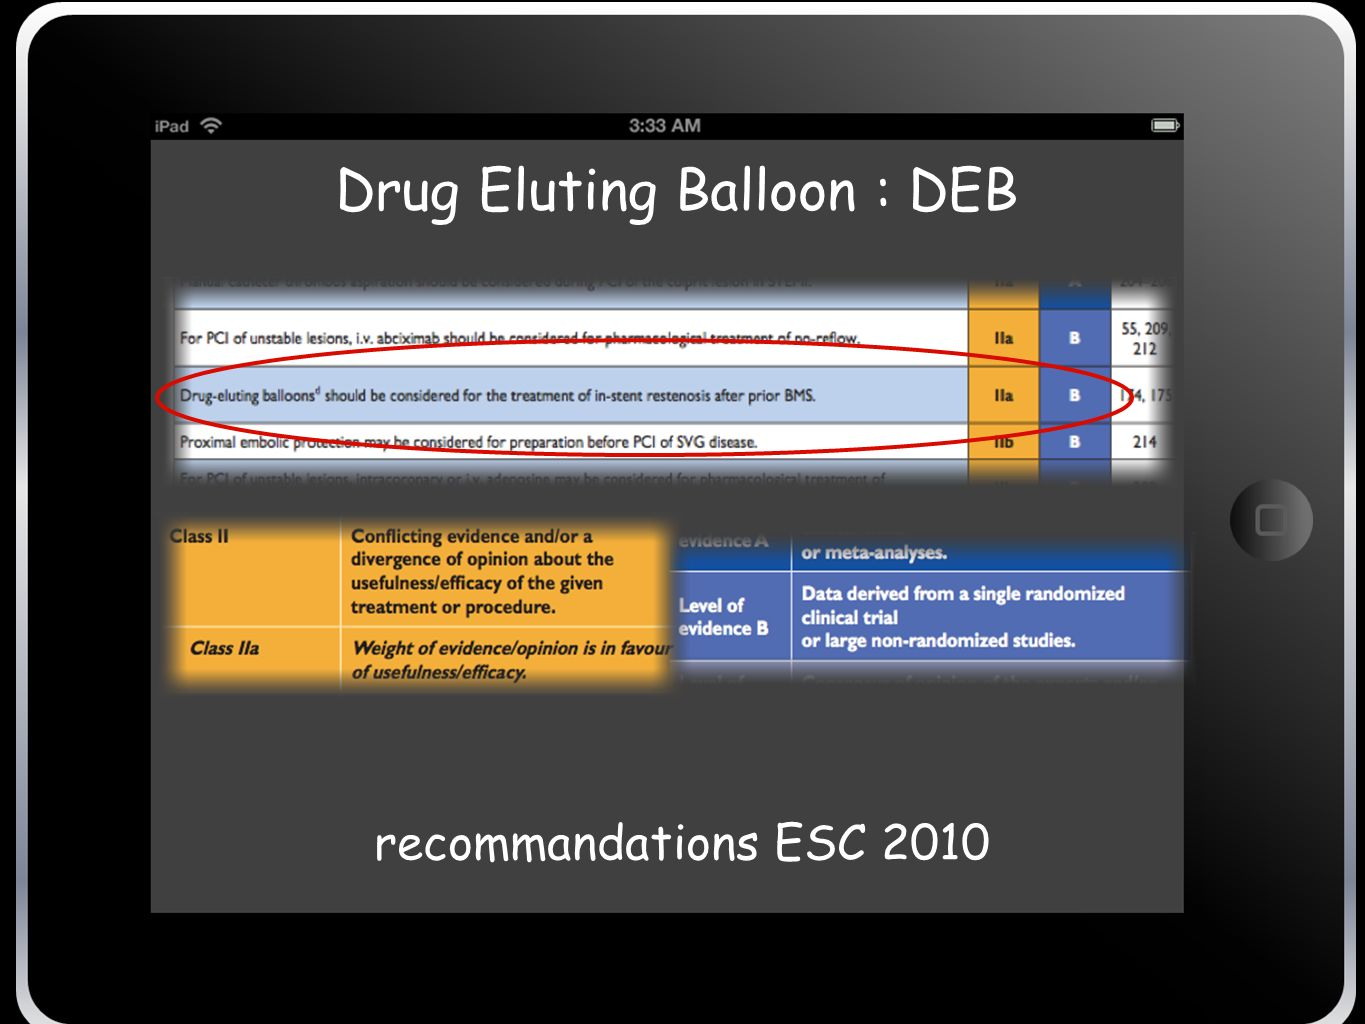 Drug Eluting Balloon : DEB